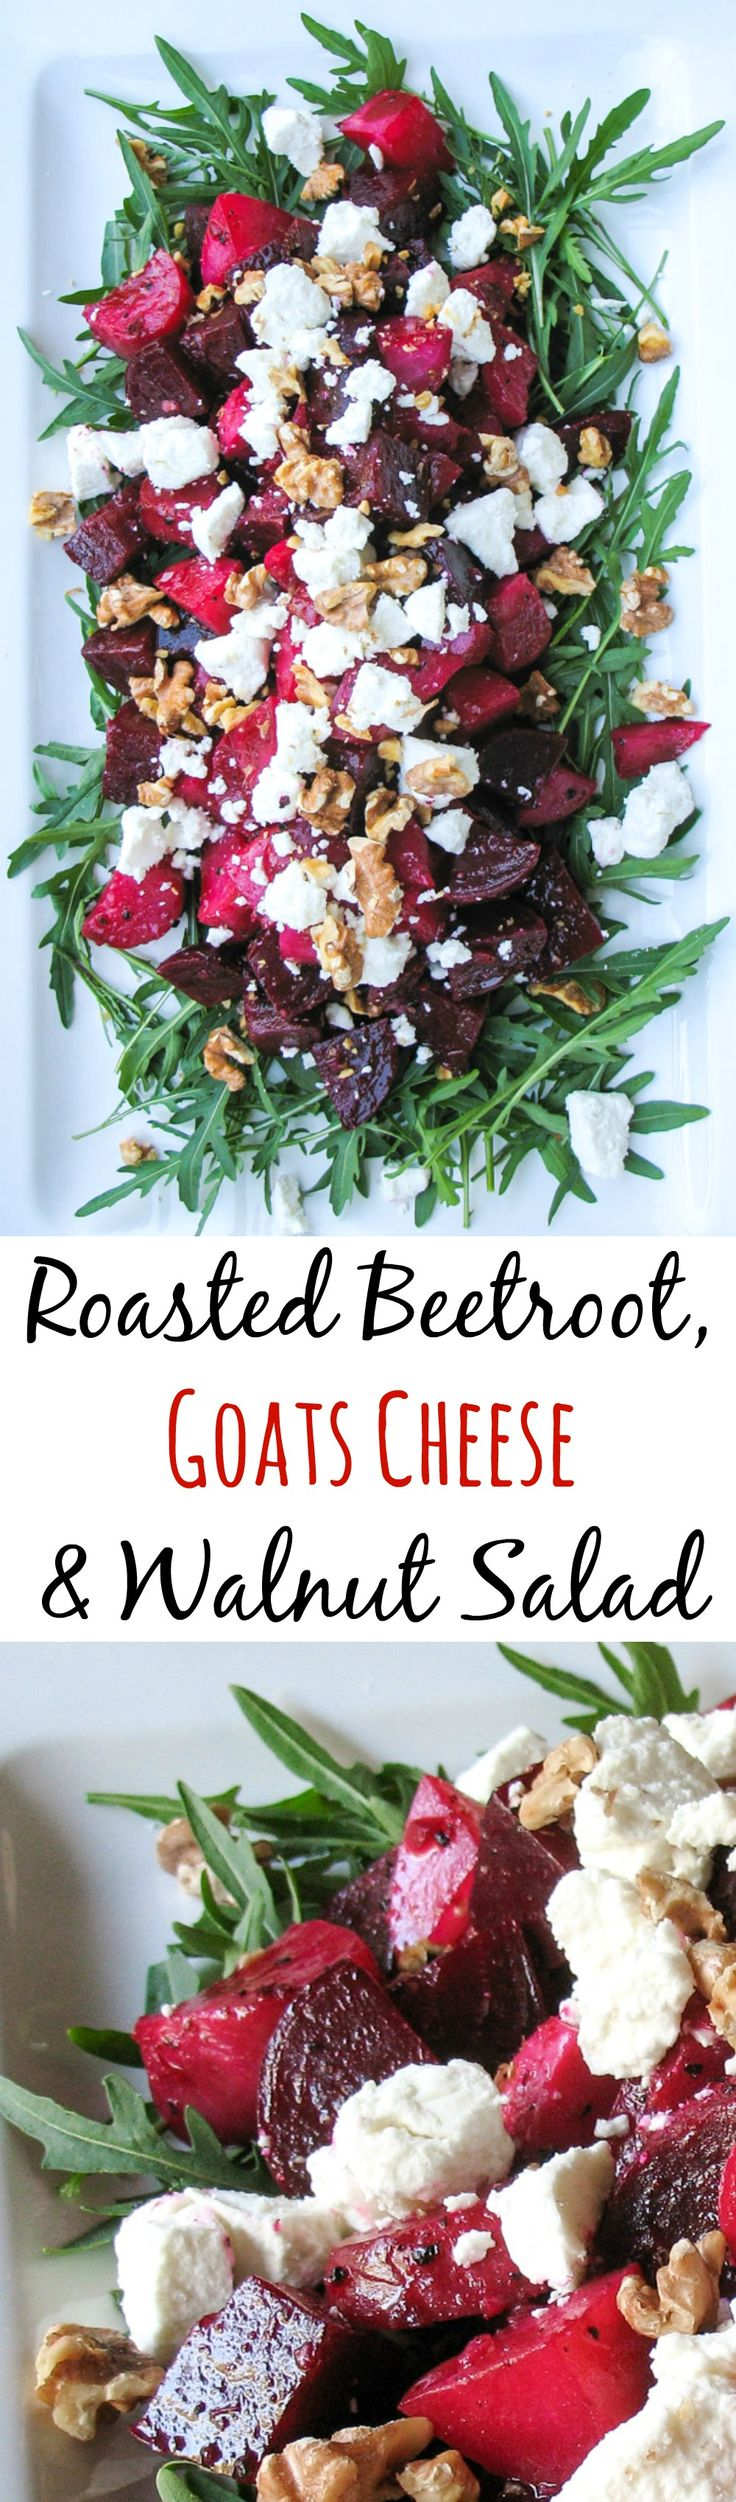 Roasted Beetroot, Goats Cheese & Walnut Salad. A Great main course salad. …